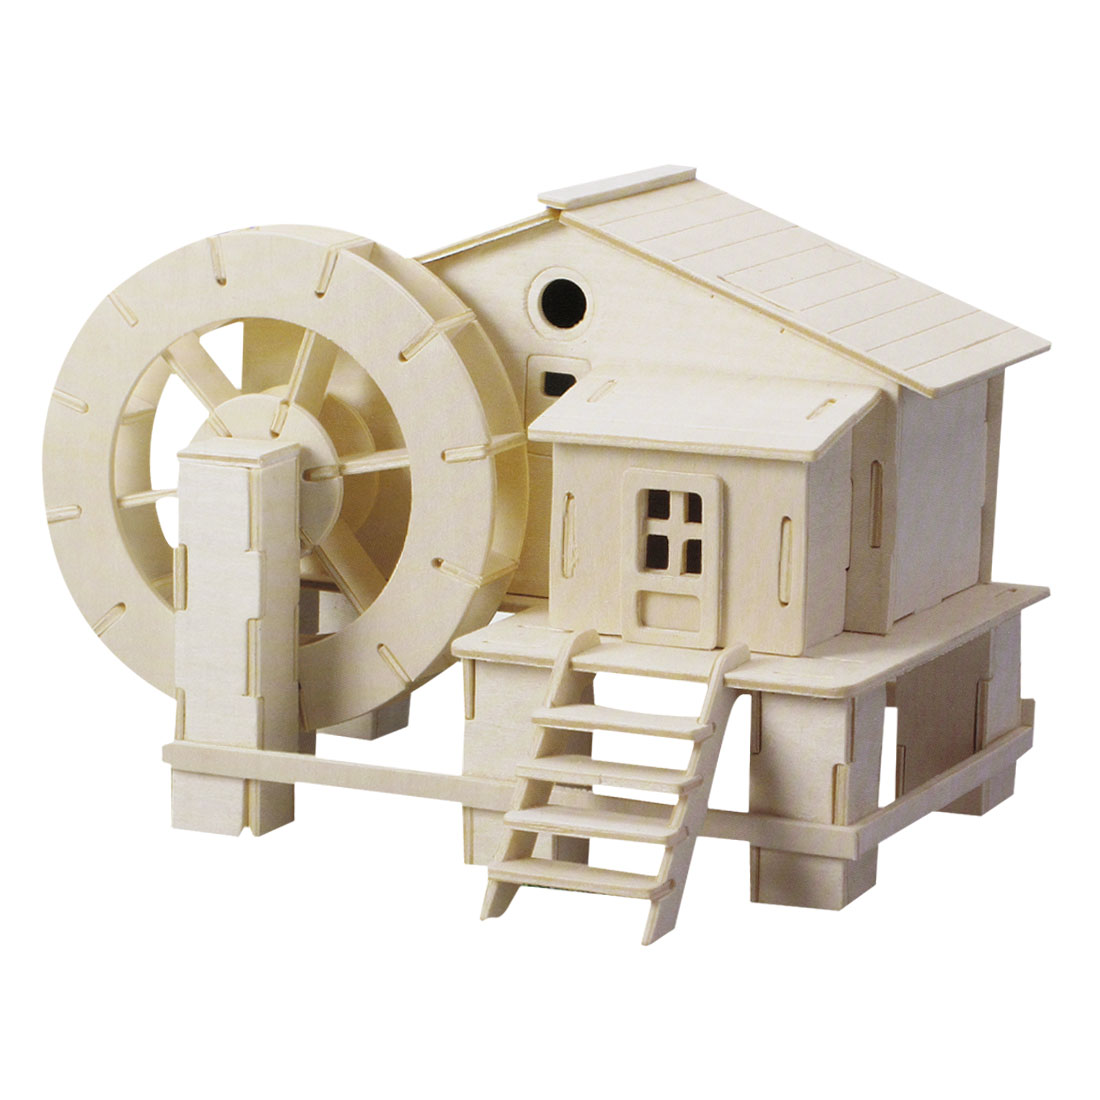 3D Water Mill Model Wooden DIY Assembly Puzzled Toy Gift Woodcraft Toy